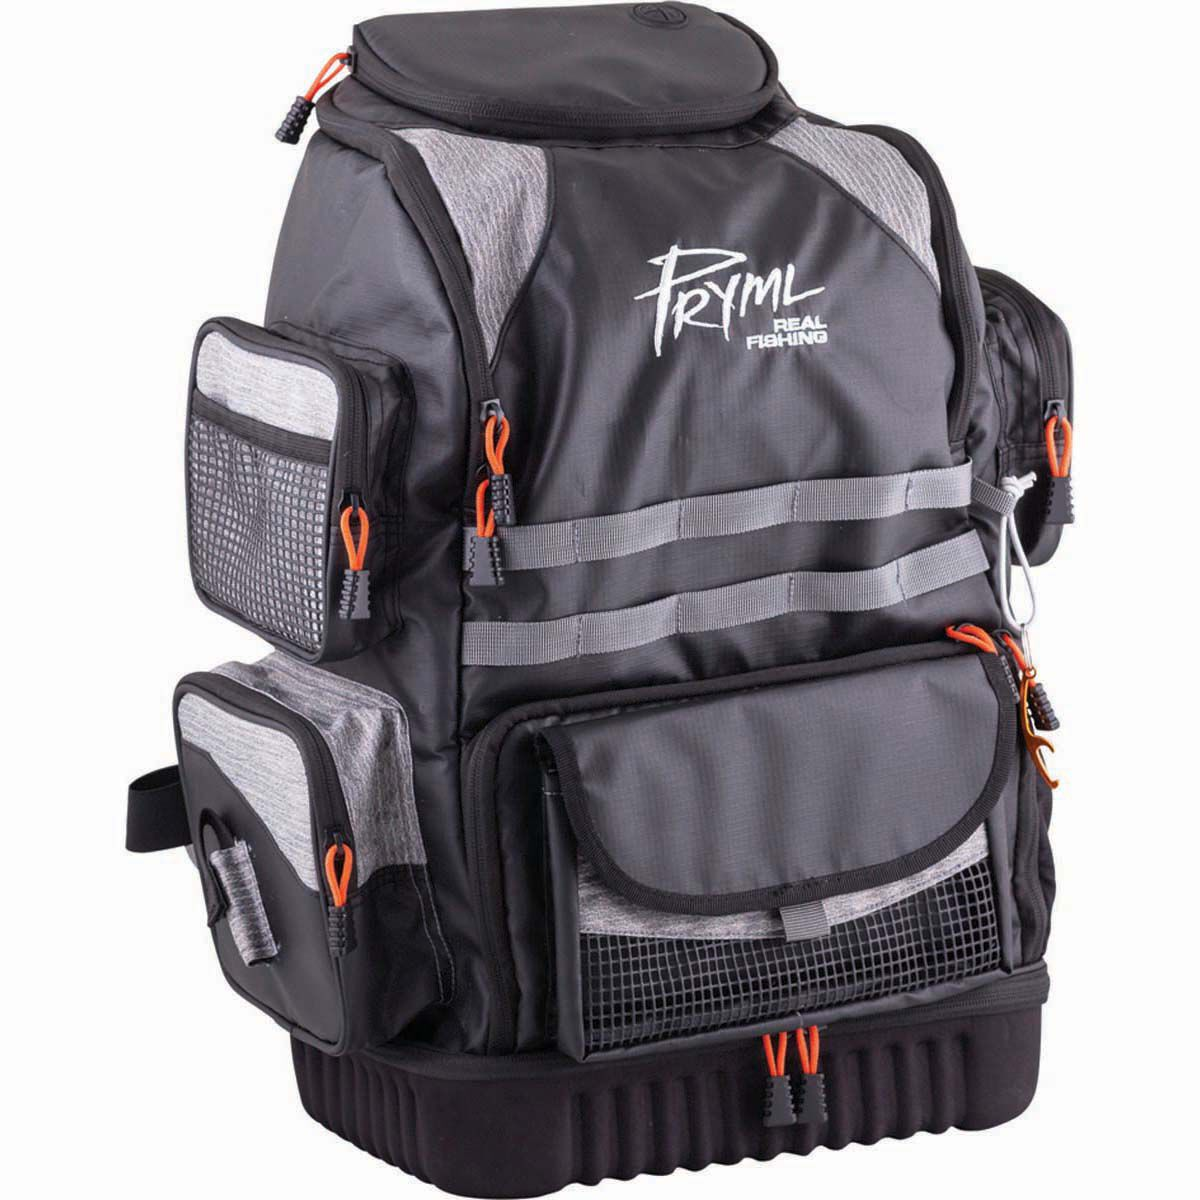 Pryml Predator Trekking Pack Tackle Bag  @ BCF